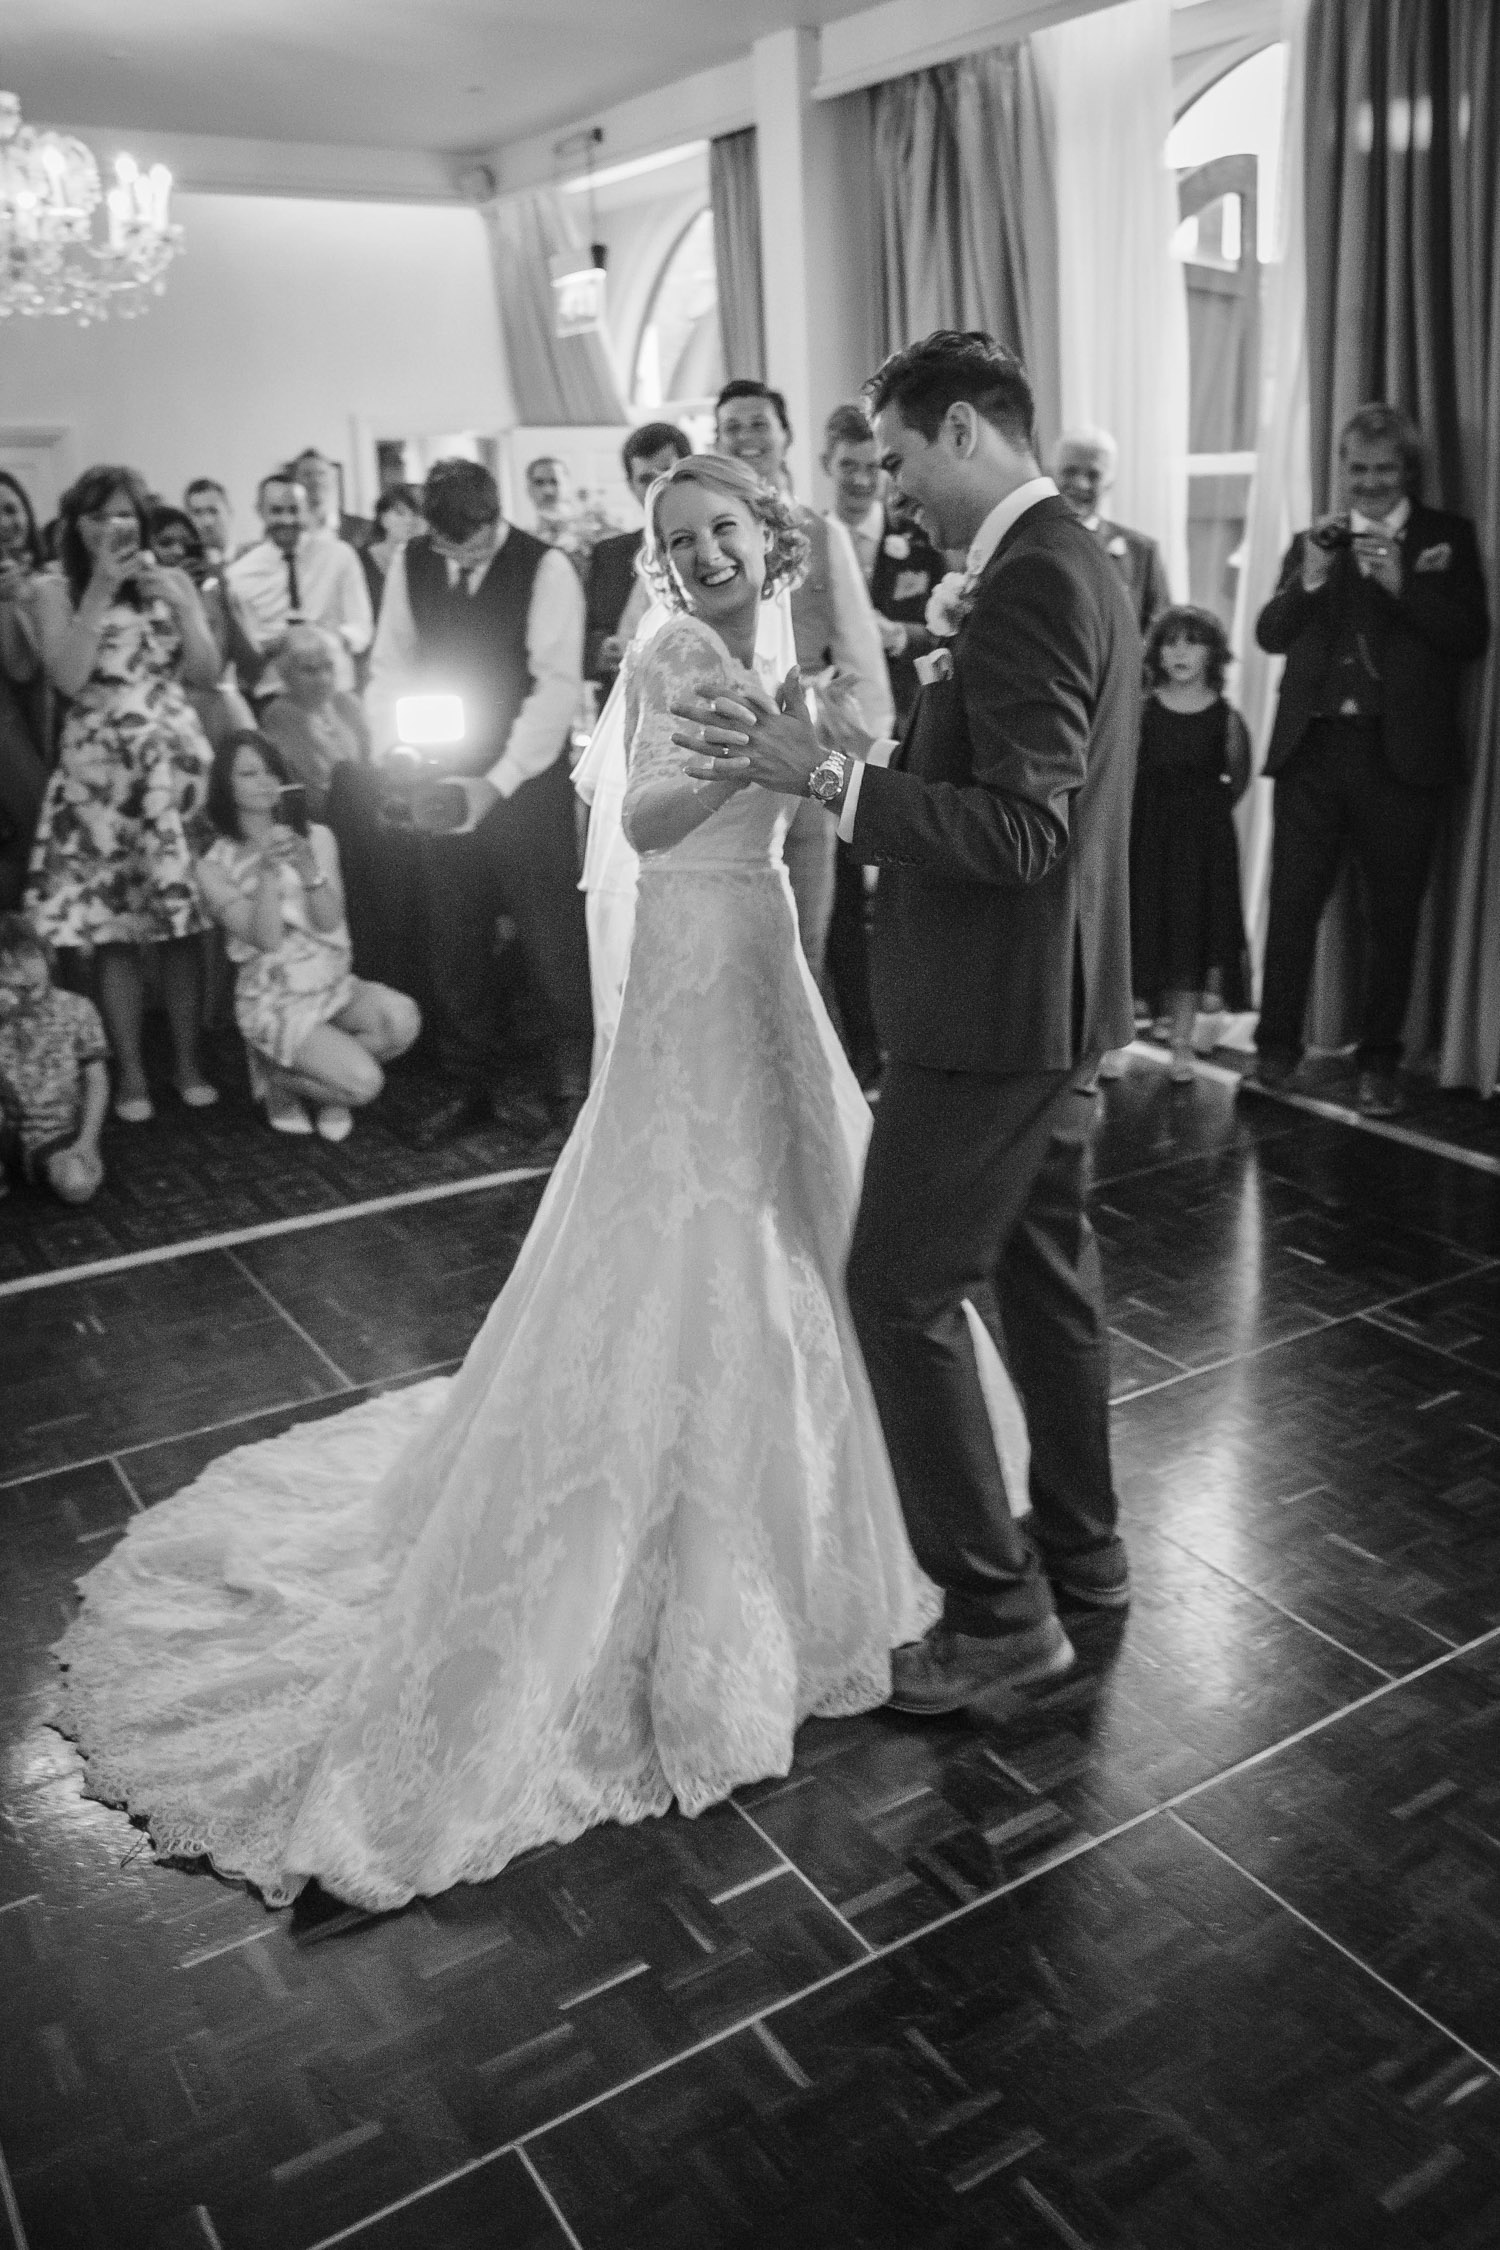 First dance at Chilston Park Wedding